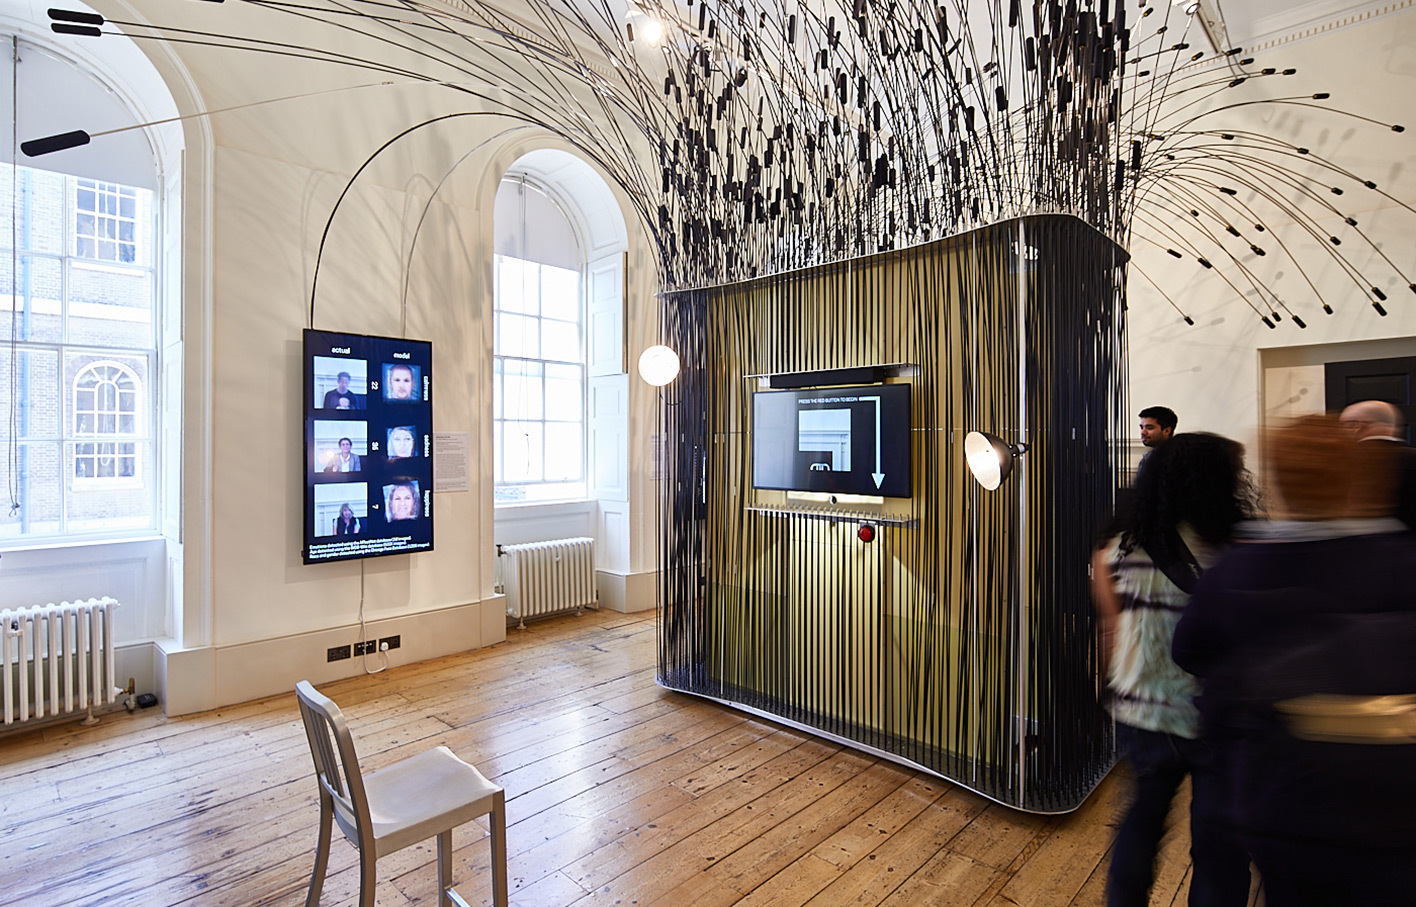 Aldworth James & Bond | London Design Biennale 2018 at Somerset House - USA 'Face Values'